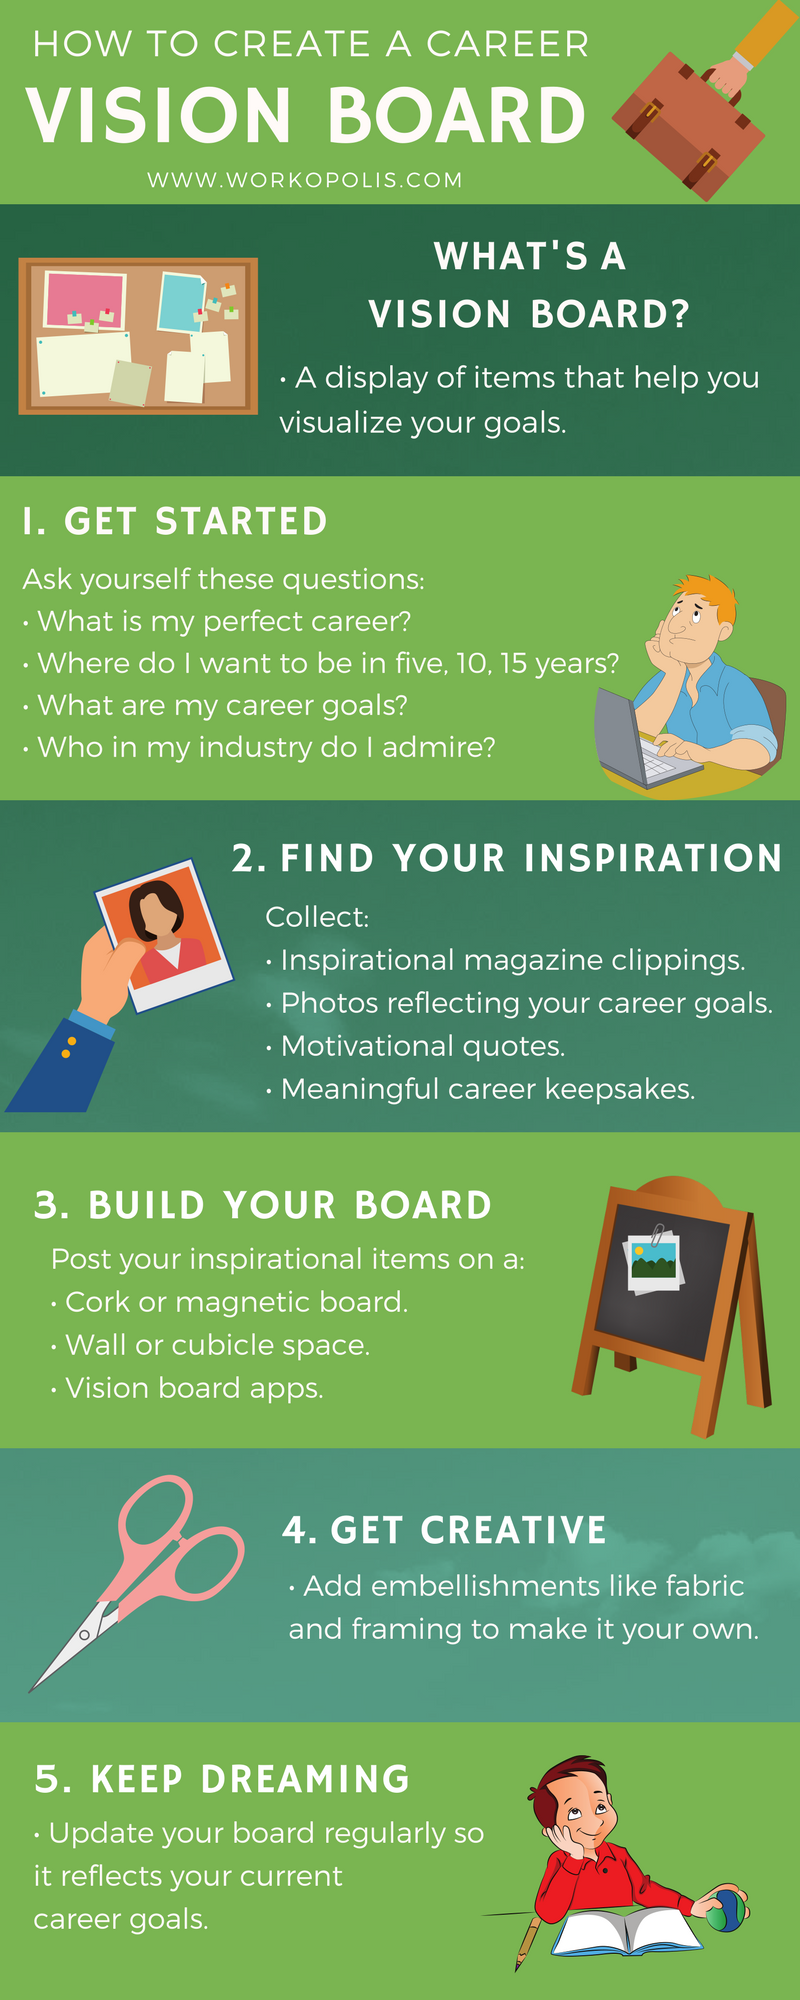 How to create a career vision board to help reach your goals in 2018 – Workopolis Blog